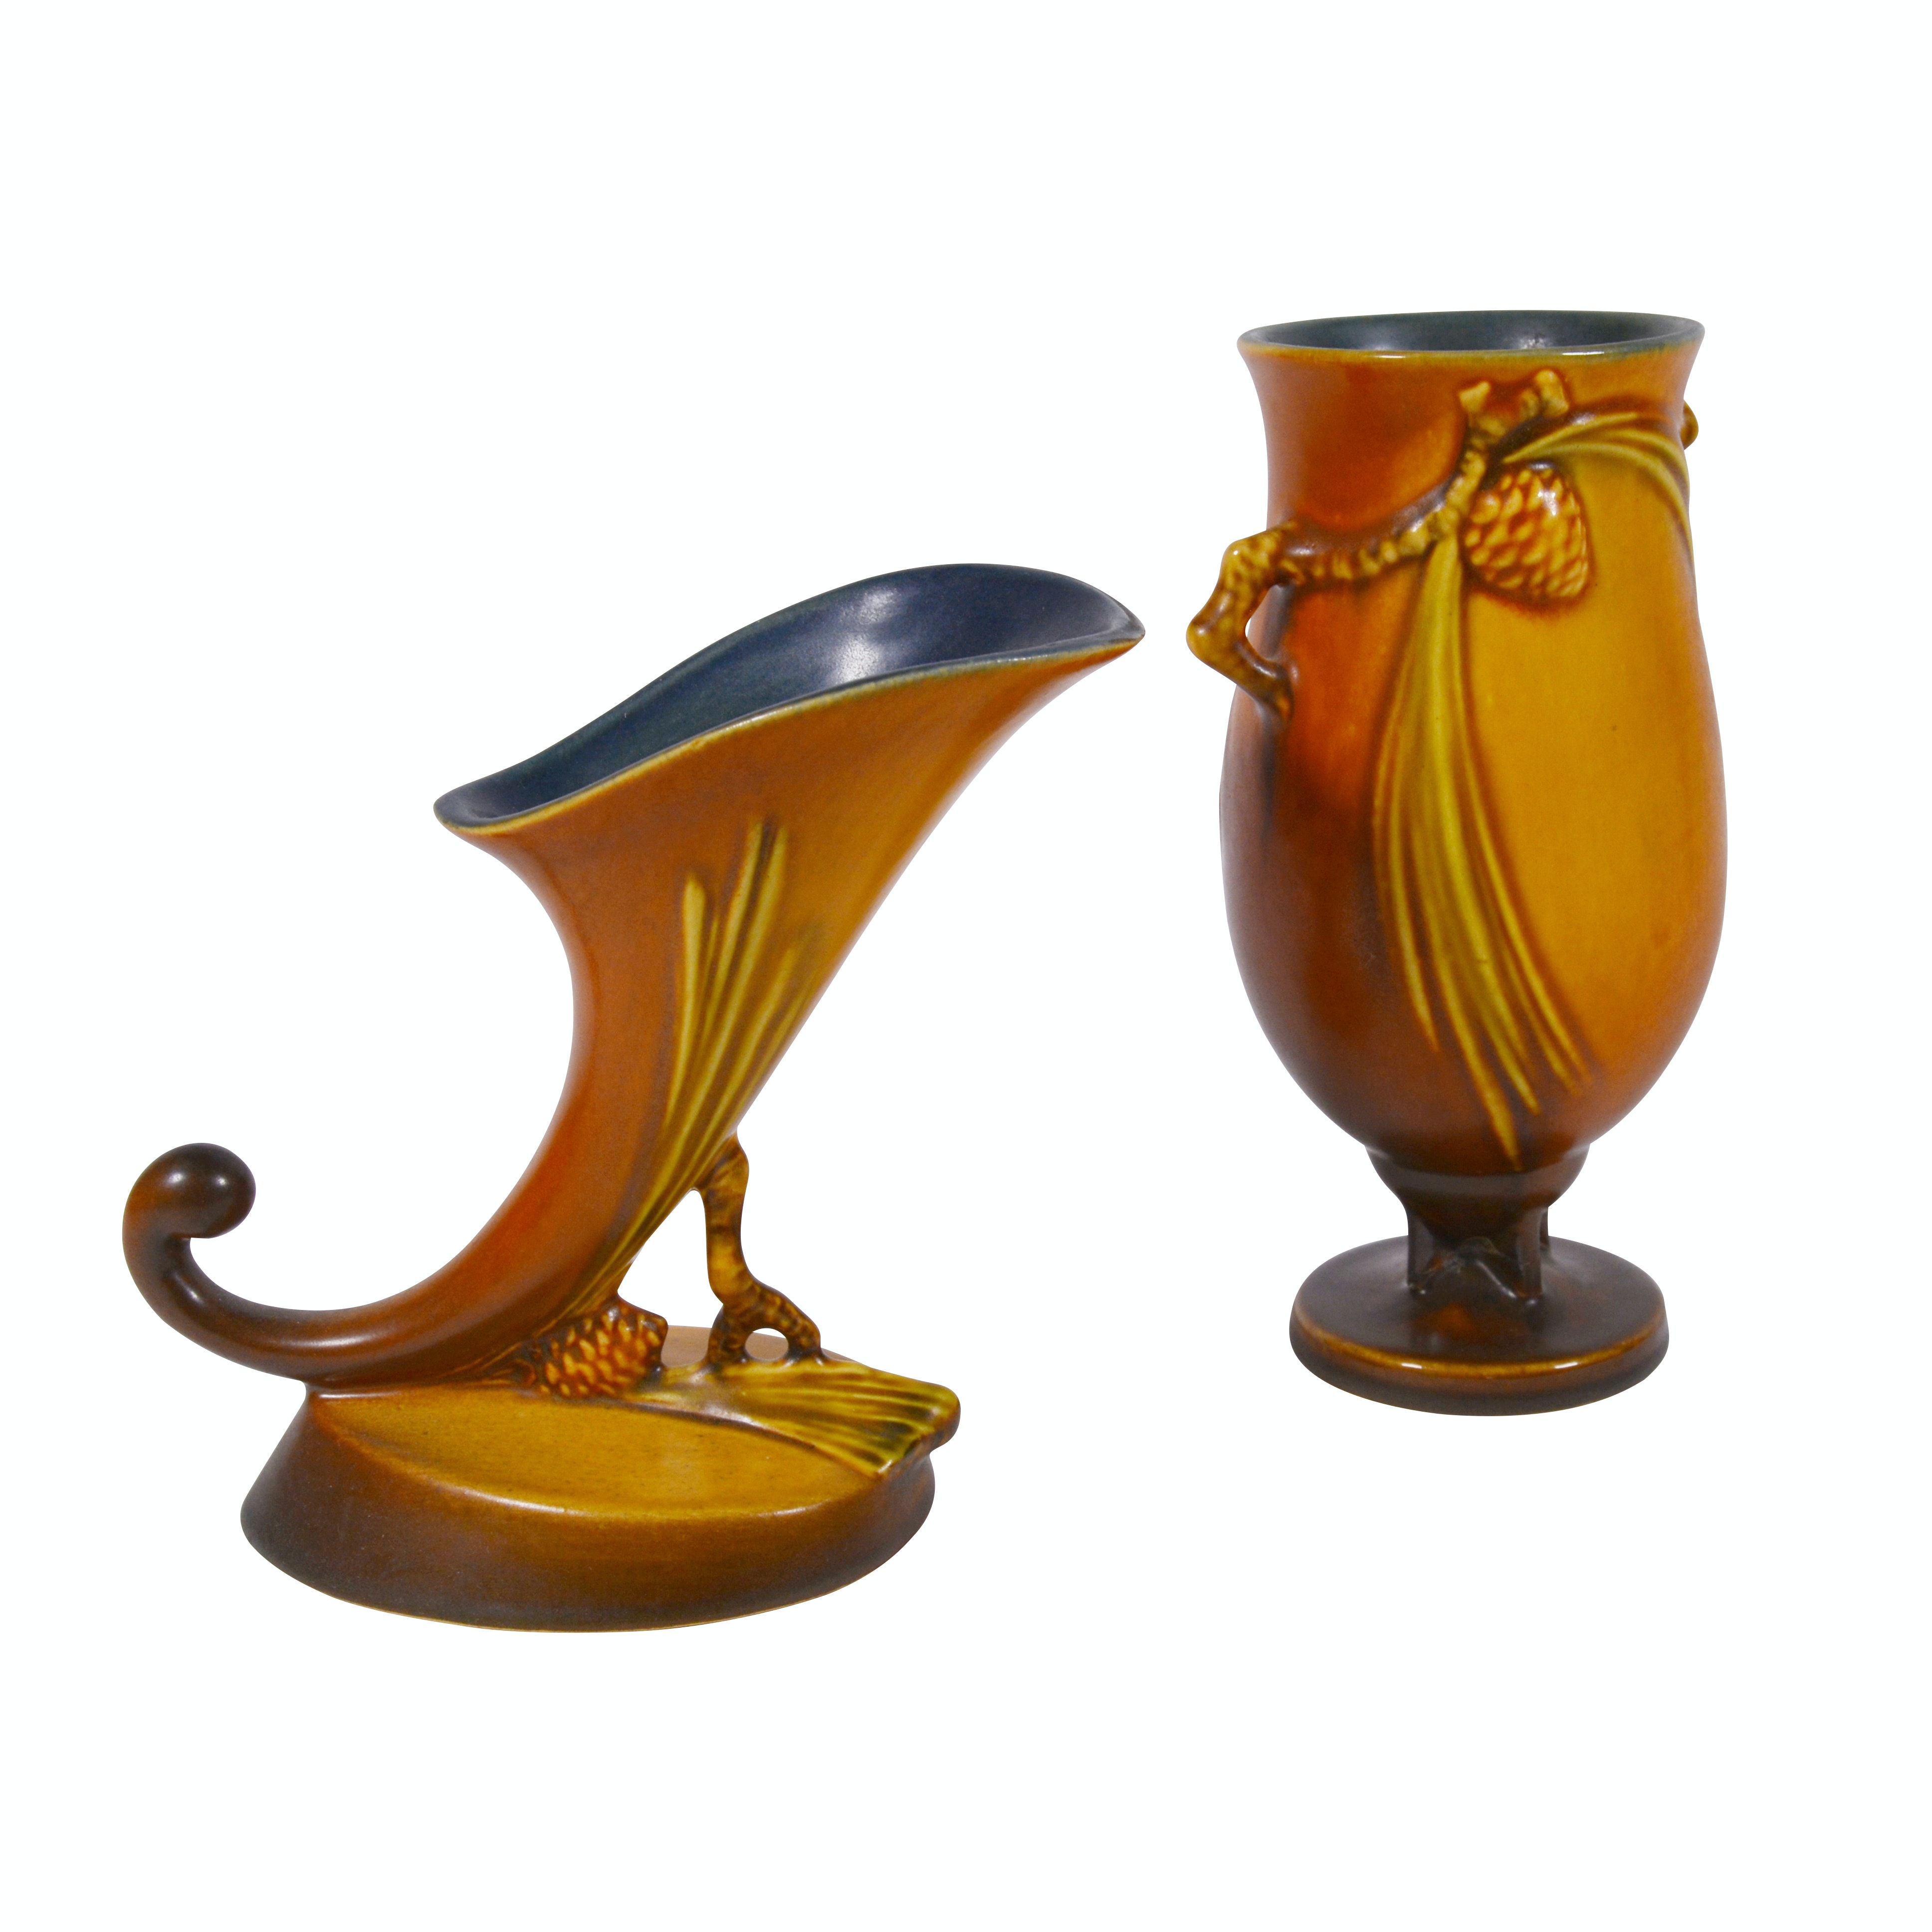 """Roseville Pottery """"Pine Cone"""" Footed Vase and Cornucopia Vase, 1930s"""